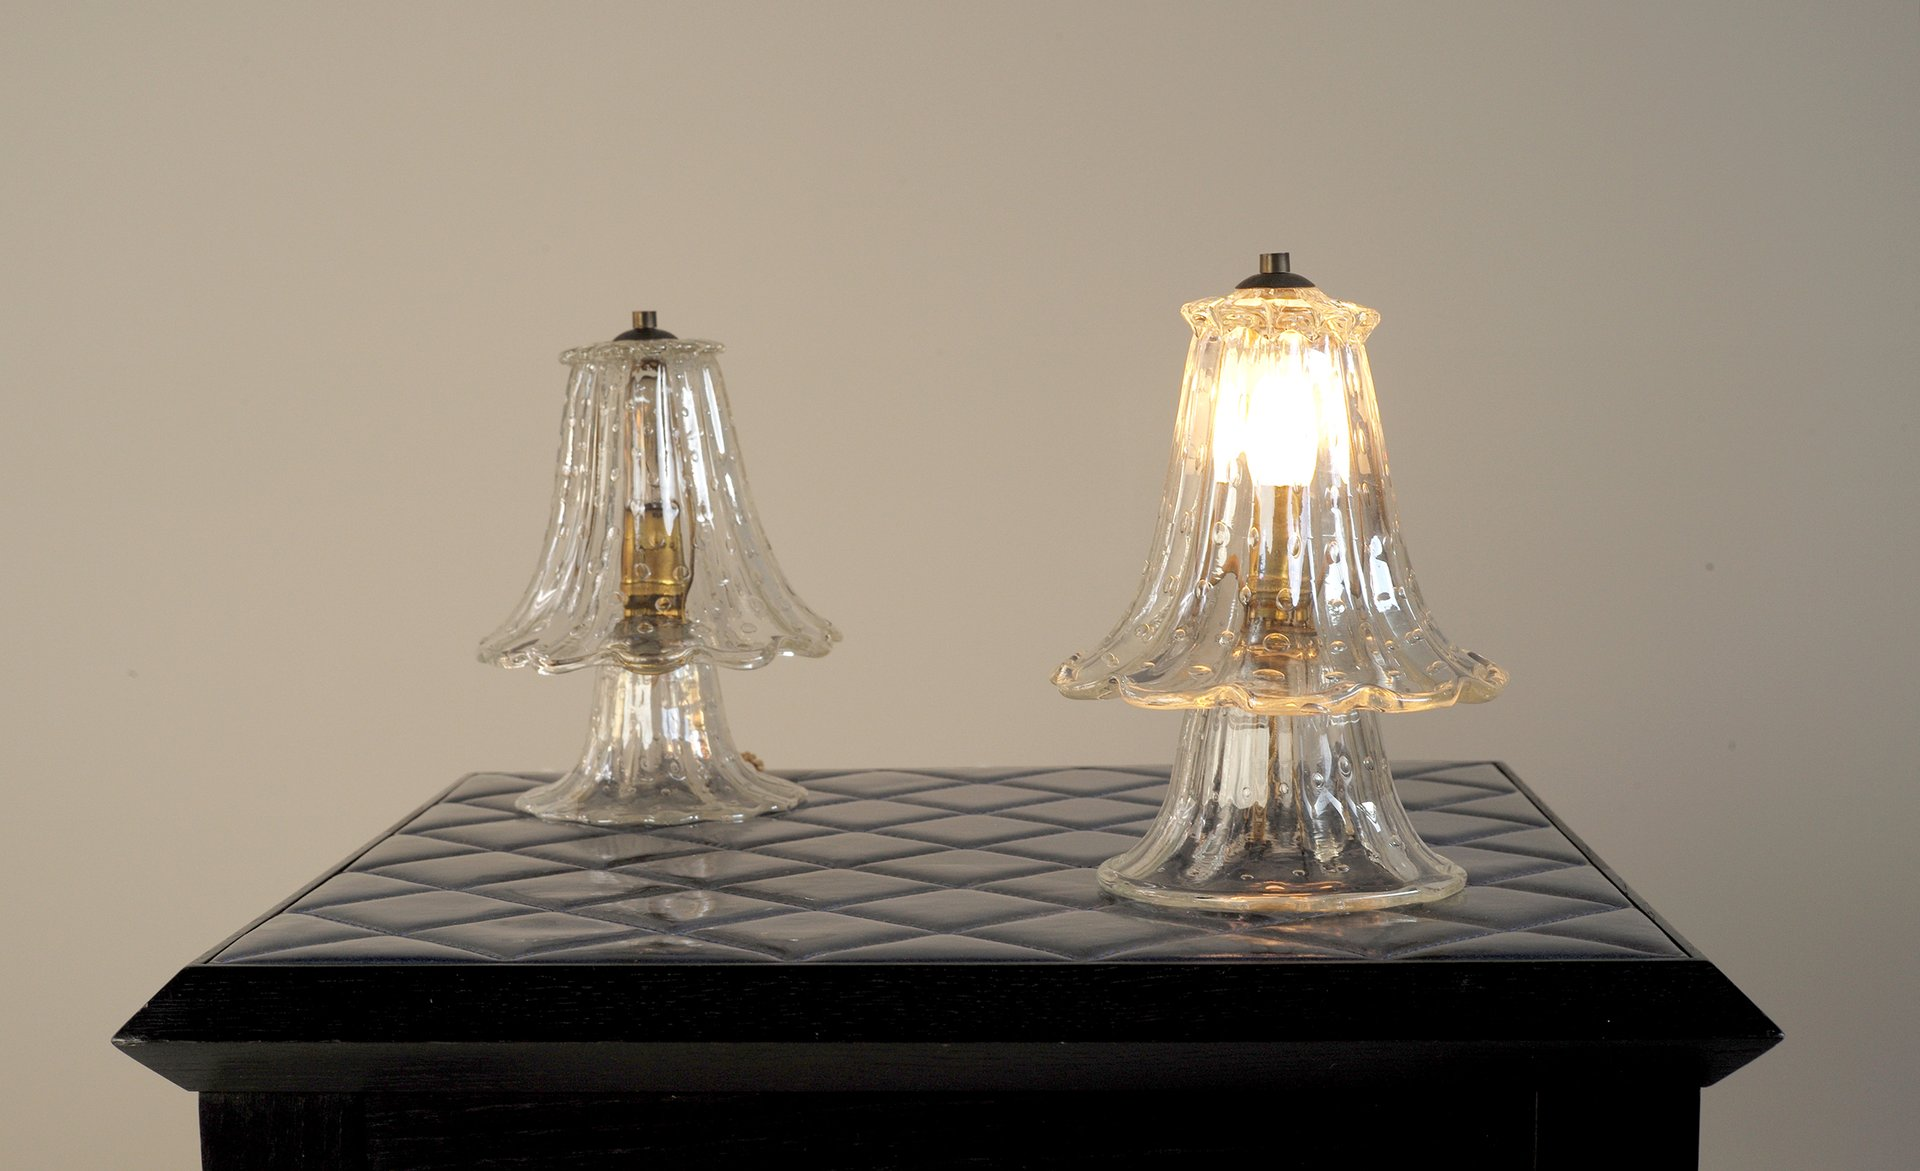 Vintage blown glass table lamps by ercole barovier for barovier vintage blown glass table lamps by ercole barovier for barovier toso 1950s set of 2 mozeypictures Gallery